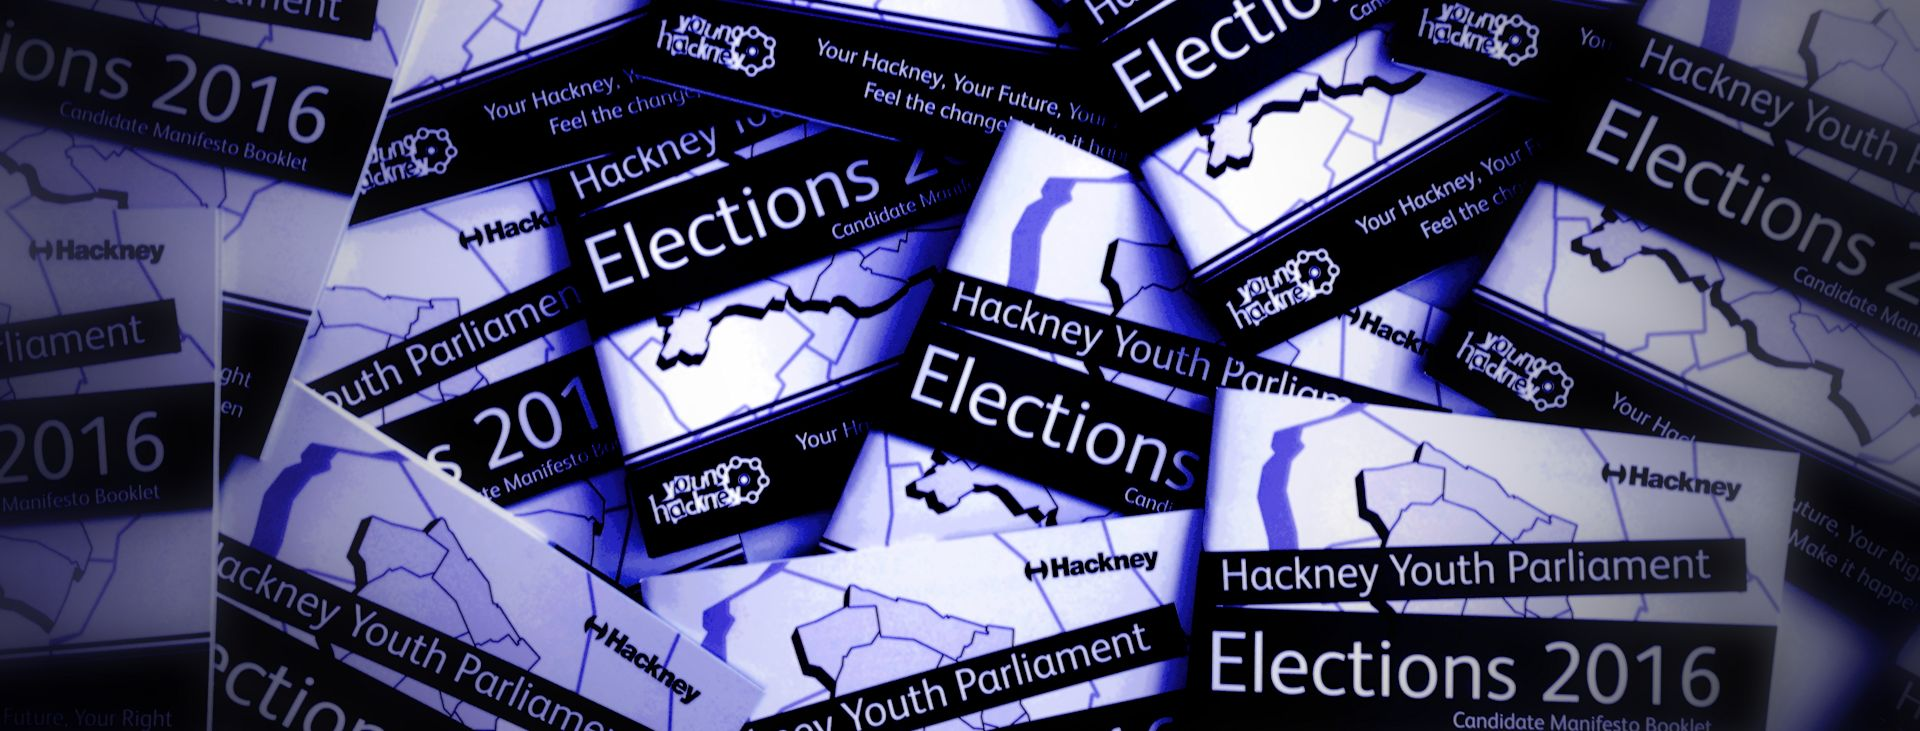 Hackney Youth Parliament Elections 2016